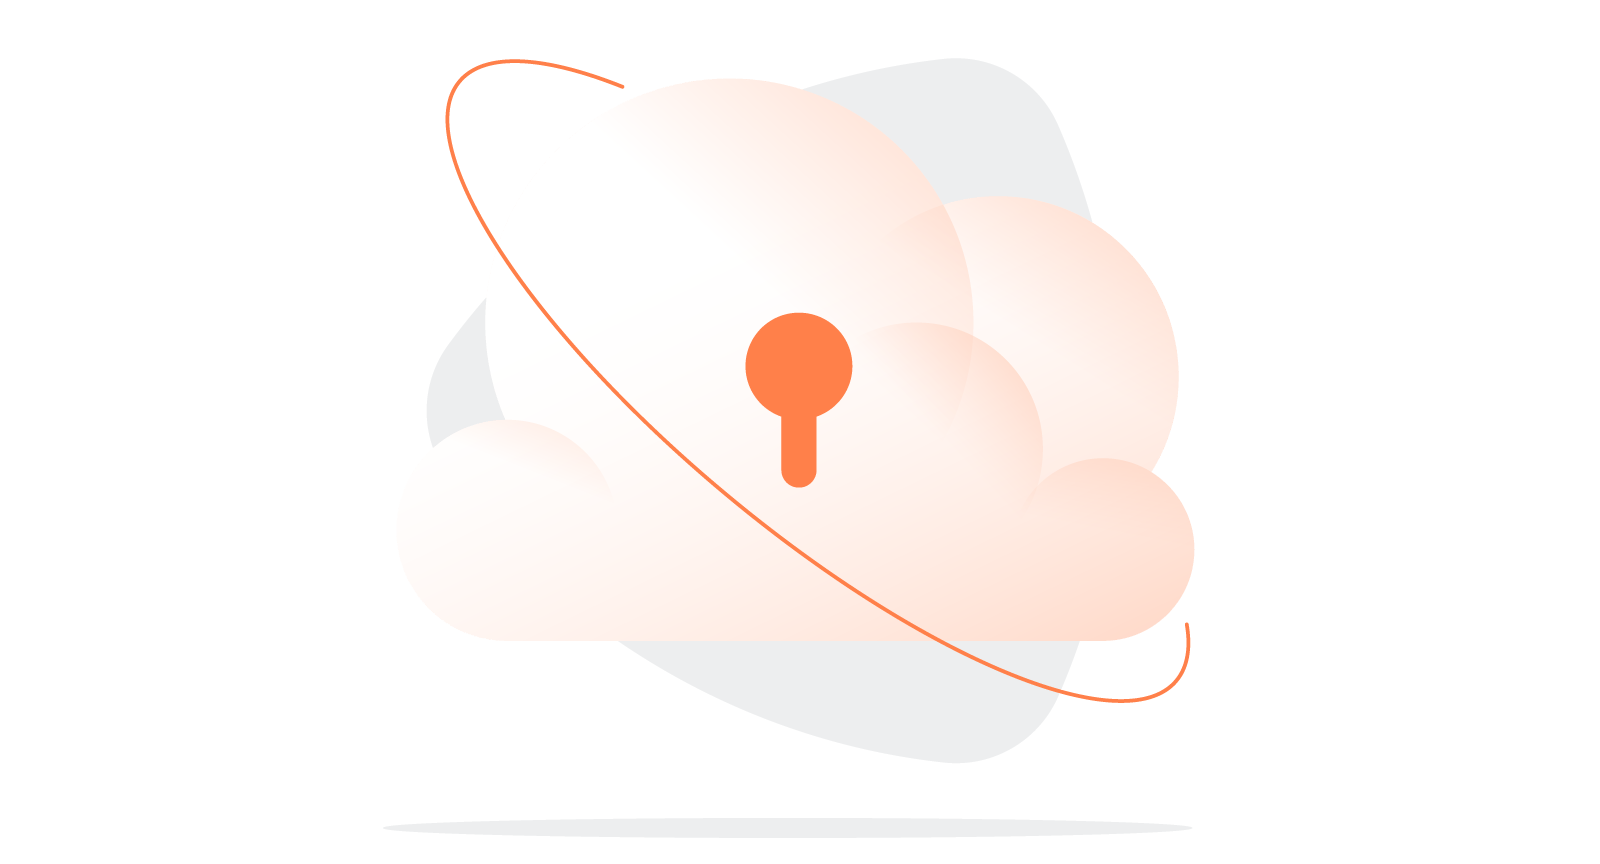 illustration of cloud with keyhole to suggest VPN